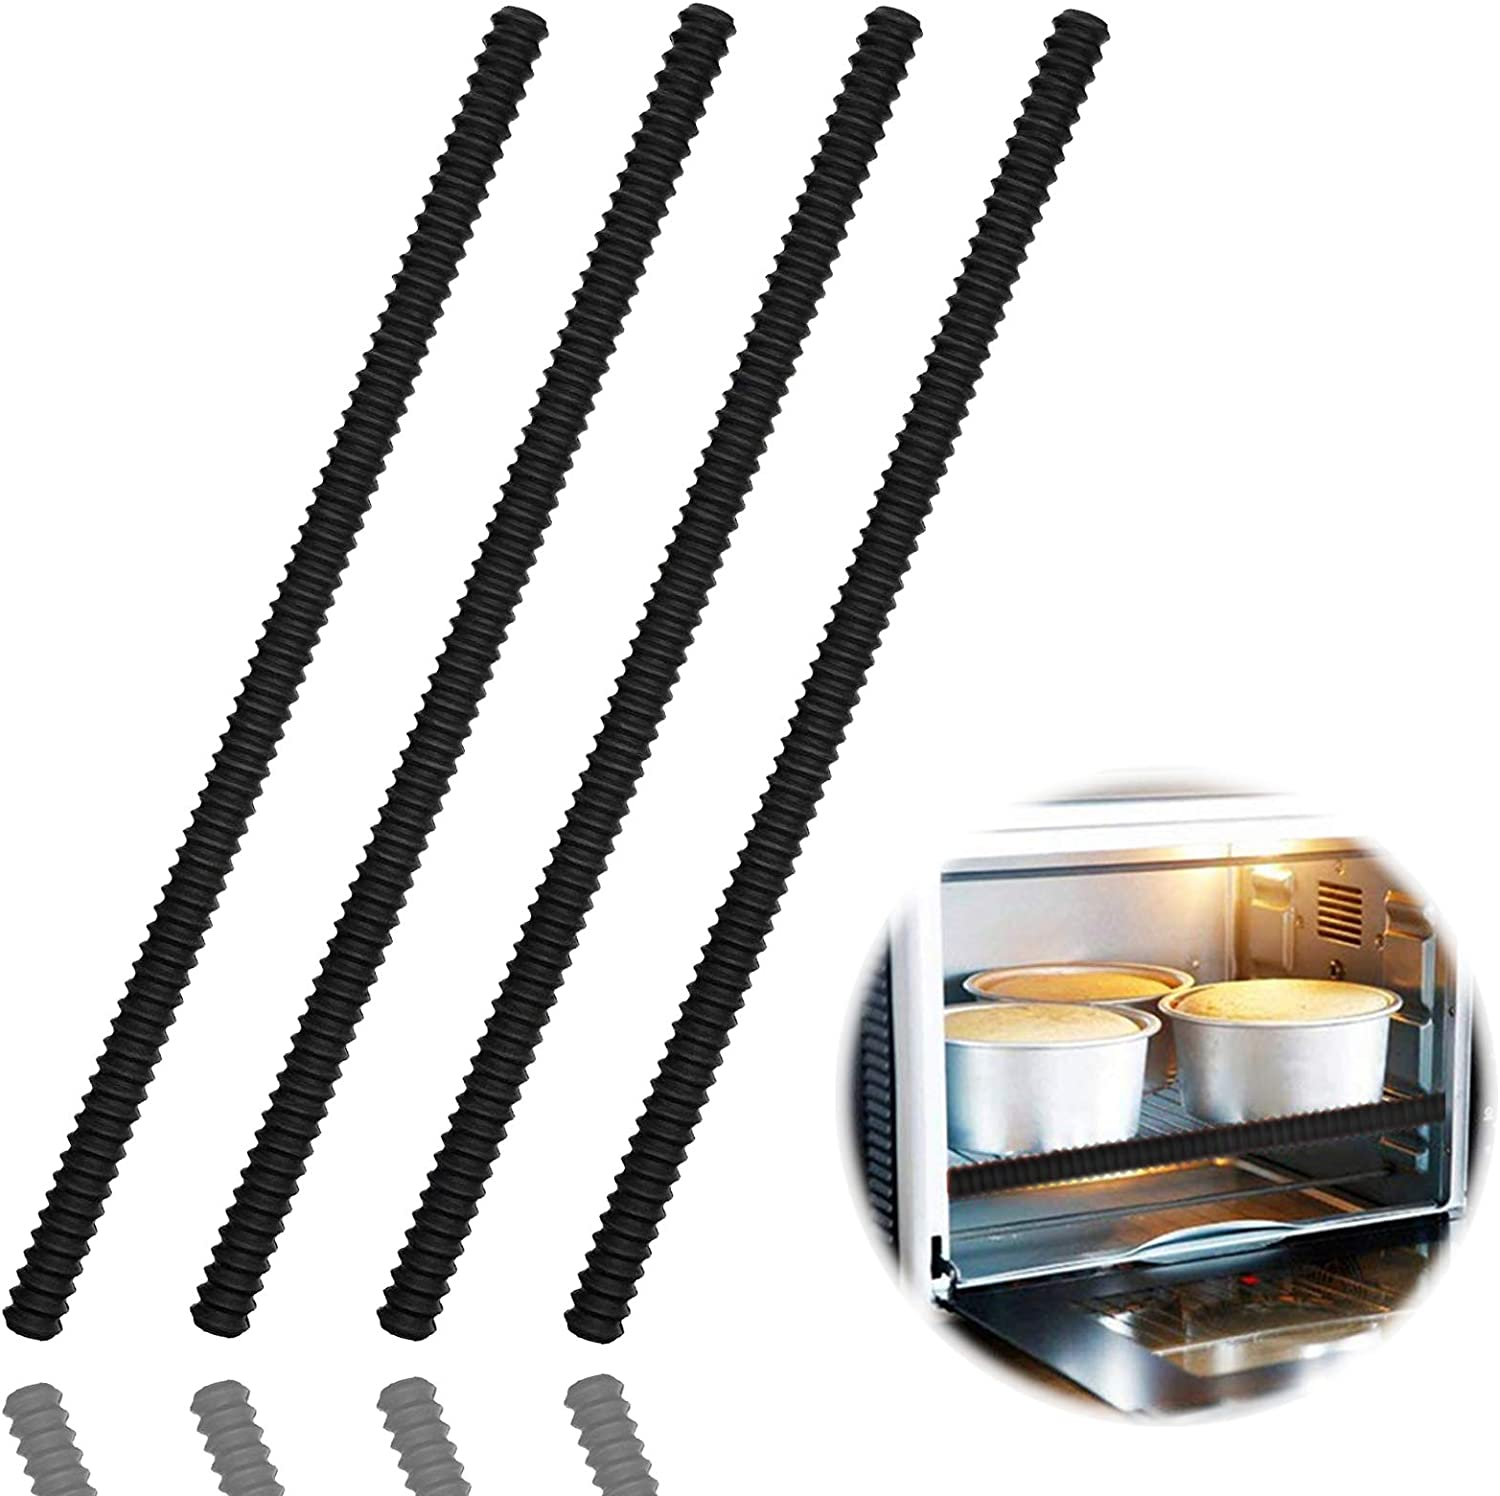 Oven Rack Shields - 4 Pack Heat Resistant Silicone Oven Rack Cover 14 inches Long Oven Rack Edge Protector, Protect Against Burns and Scars (Black)